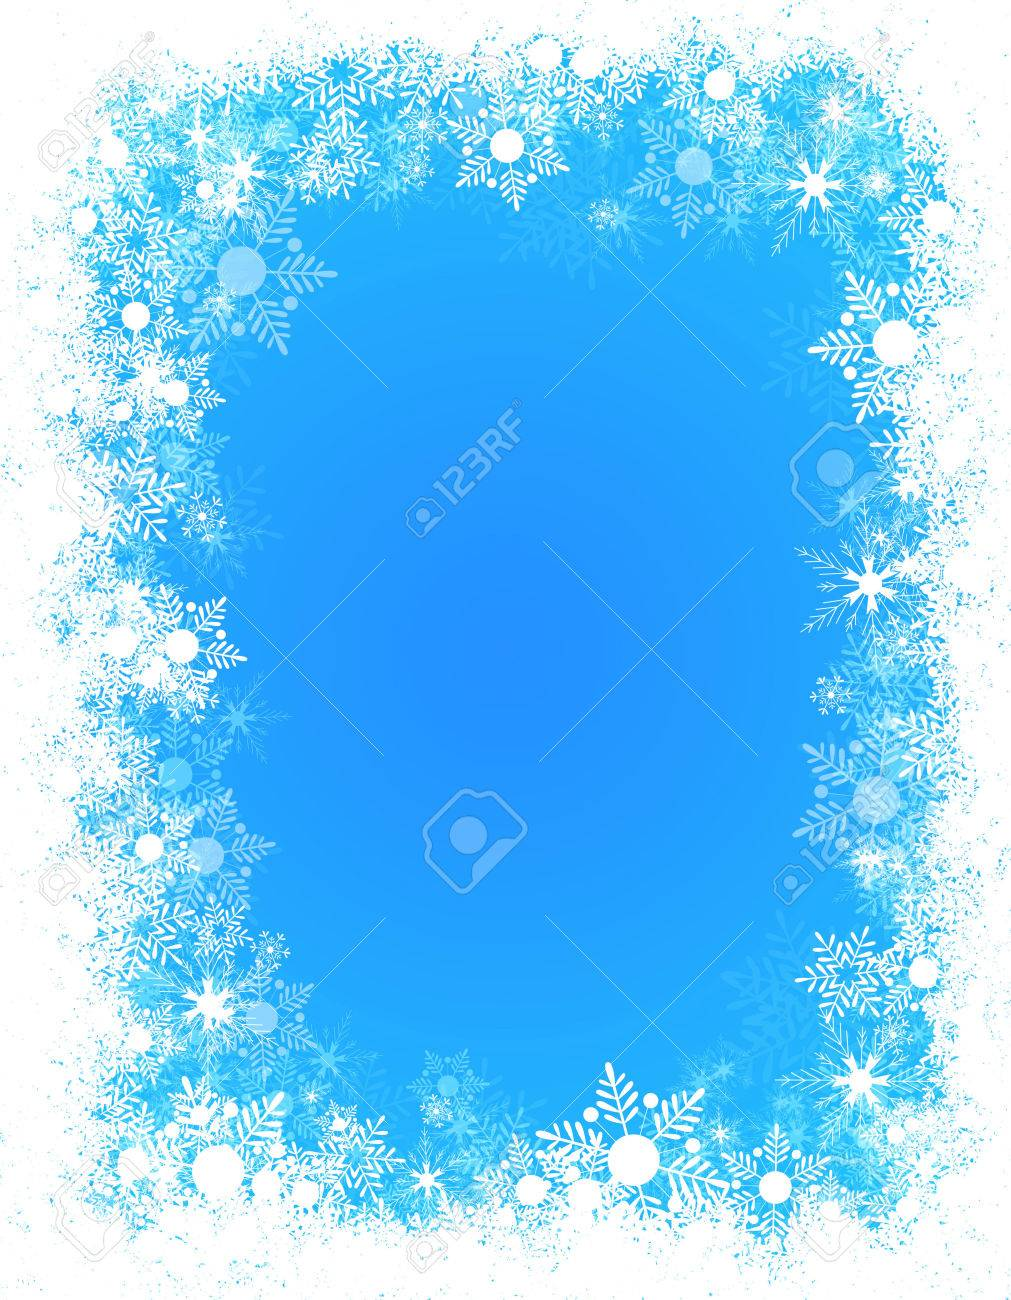 38,438 Winter Border Stock Vector Illustration And Royalty Free ...